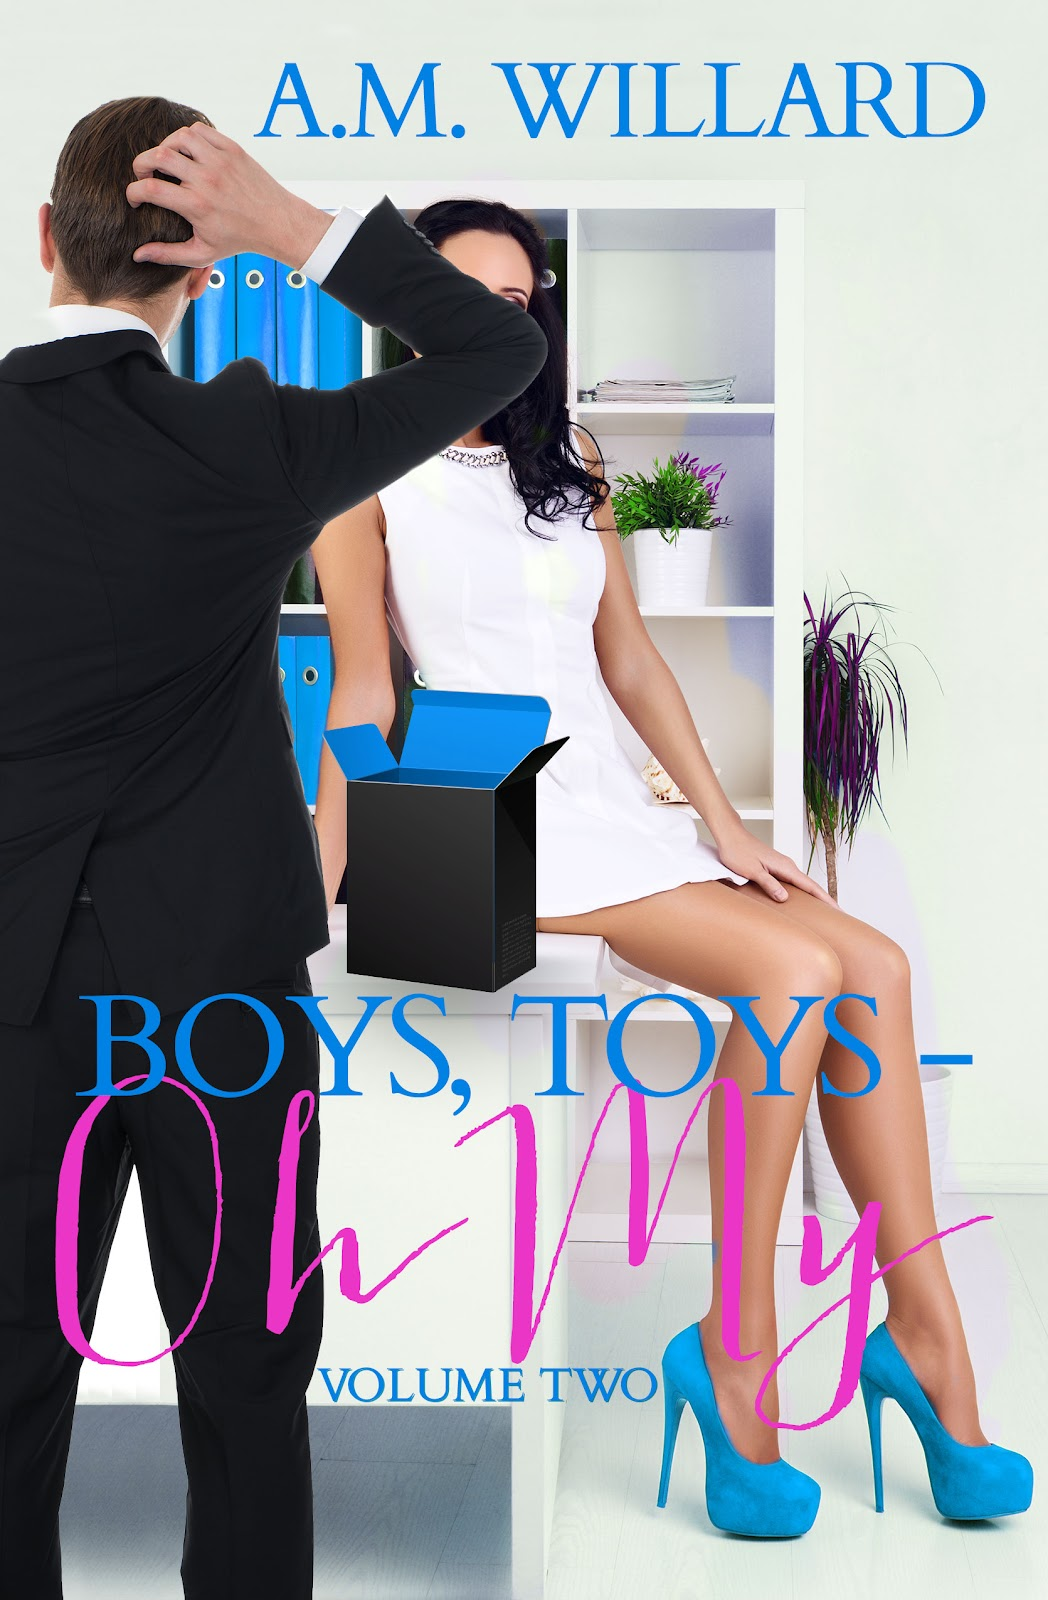 Boys,Toys-OhMyVol2(blue)Ebook.jpg